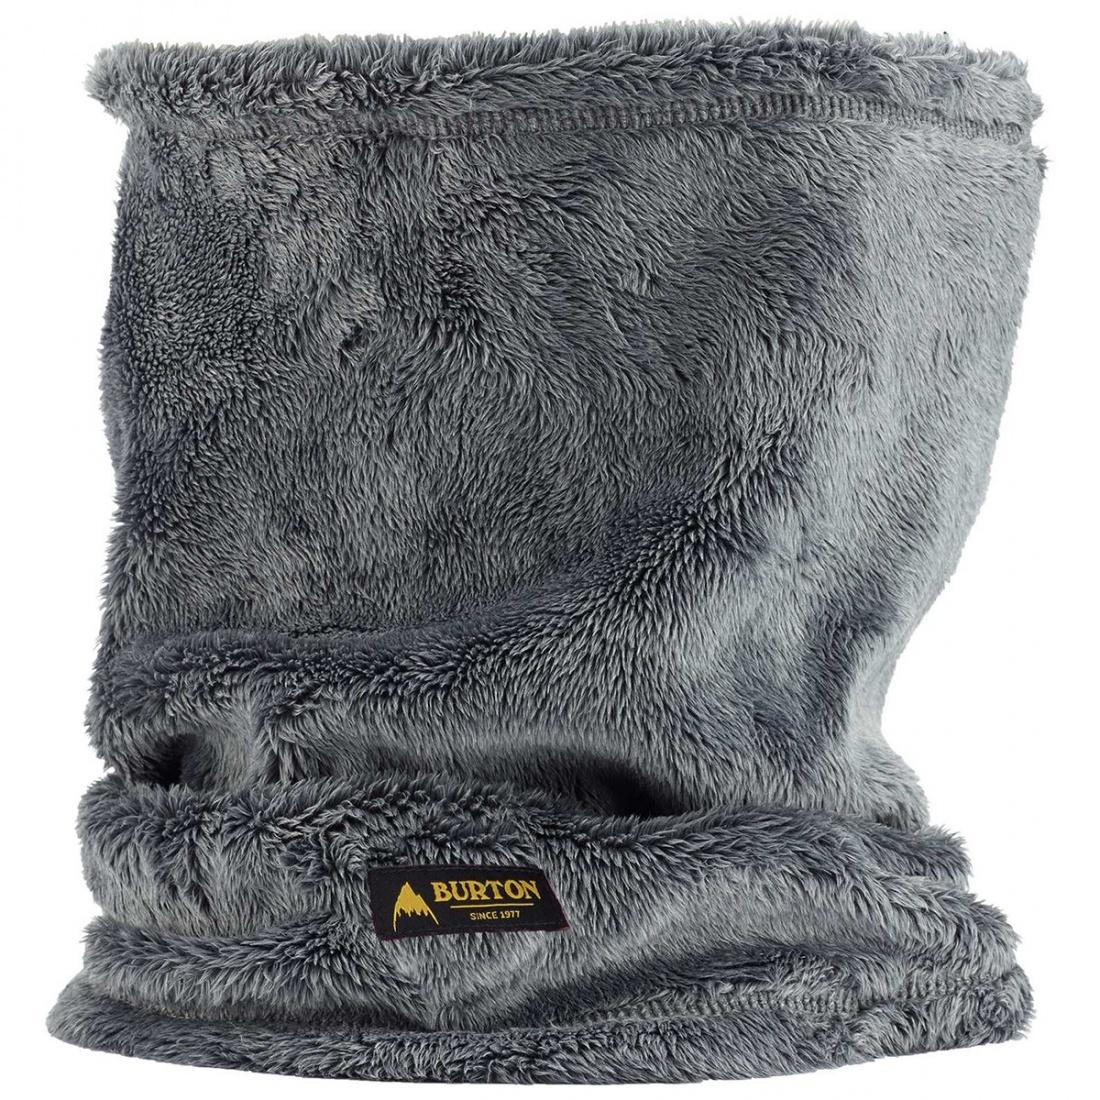 Burton Гейтор Burton Cora Neck Warmer TRUE BLACK, , , FW18 One size burton парафин burton all season fast wax gray fw18 one size